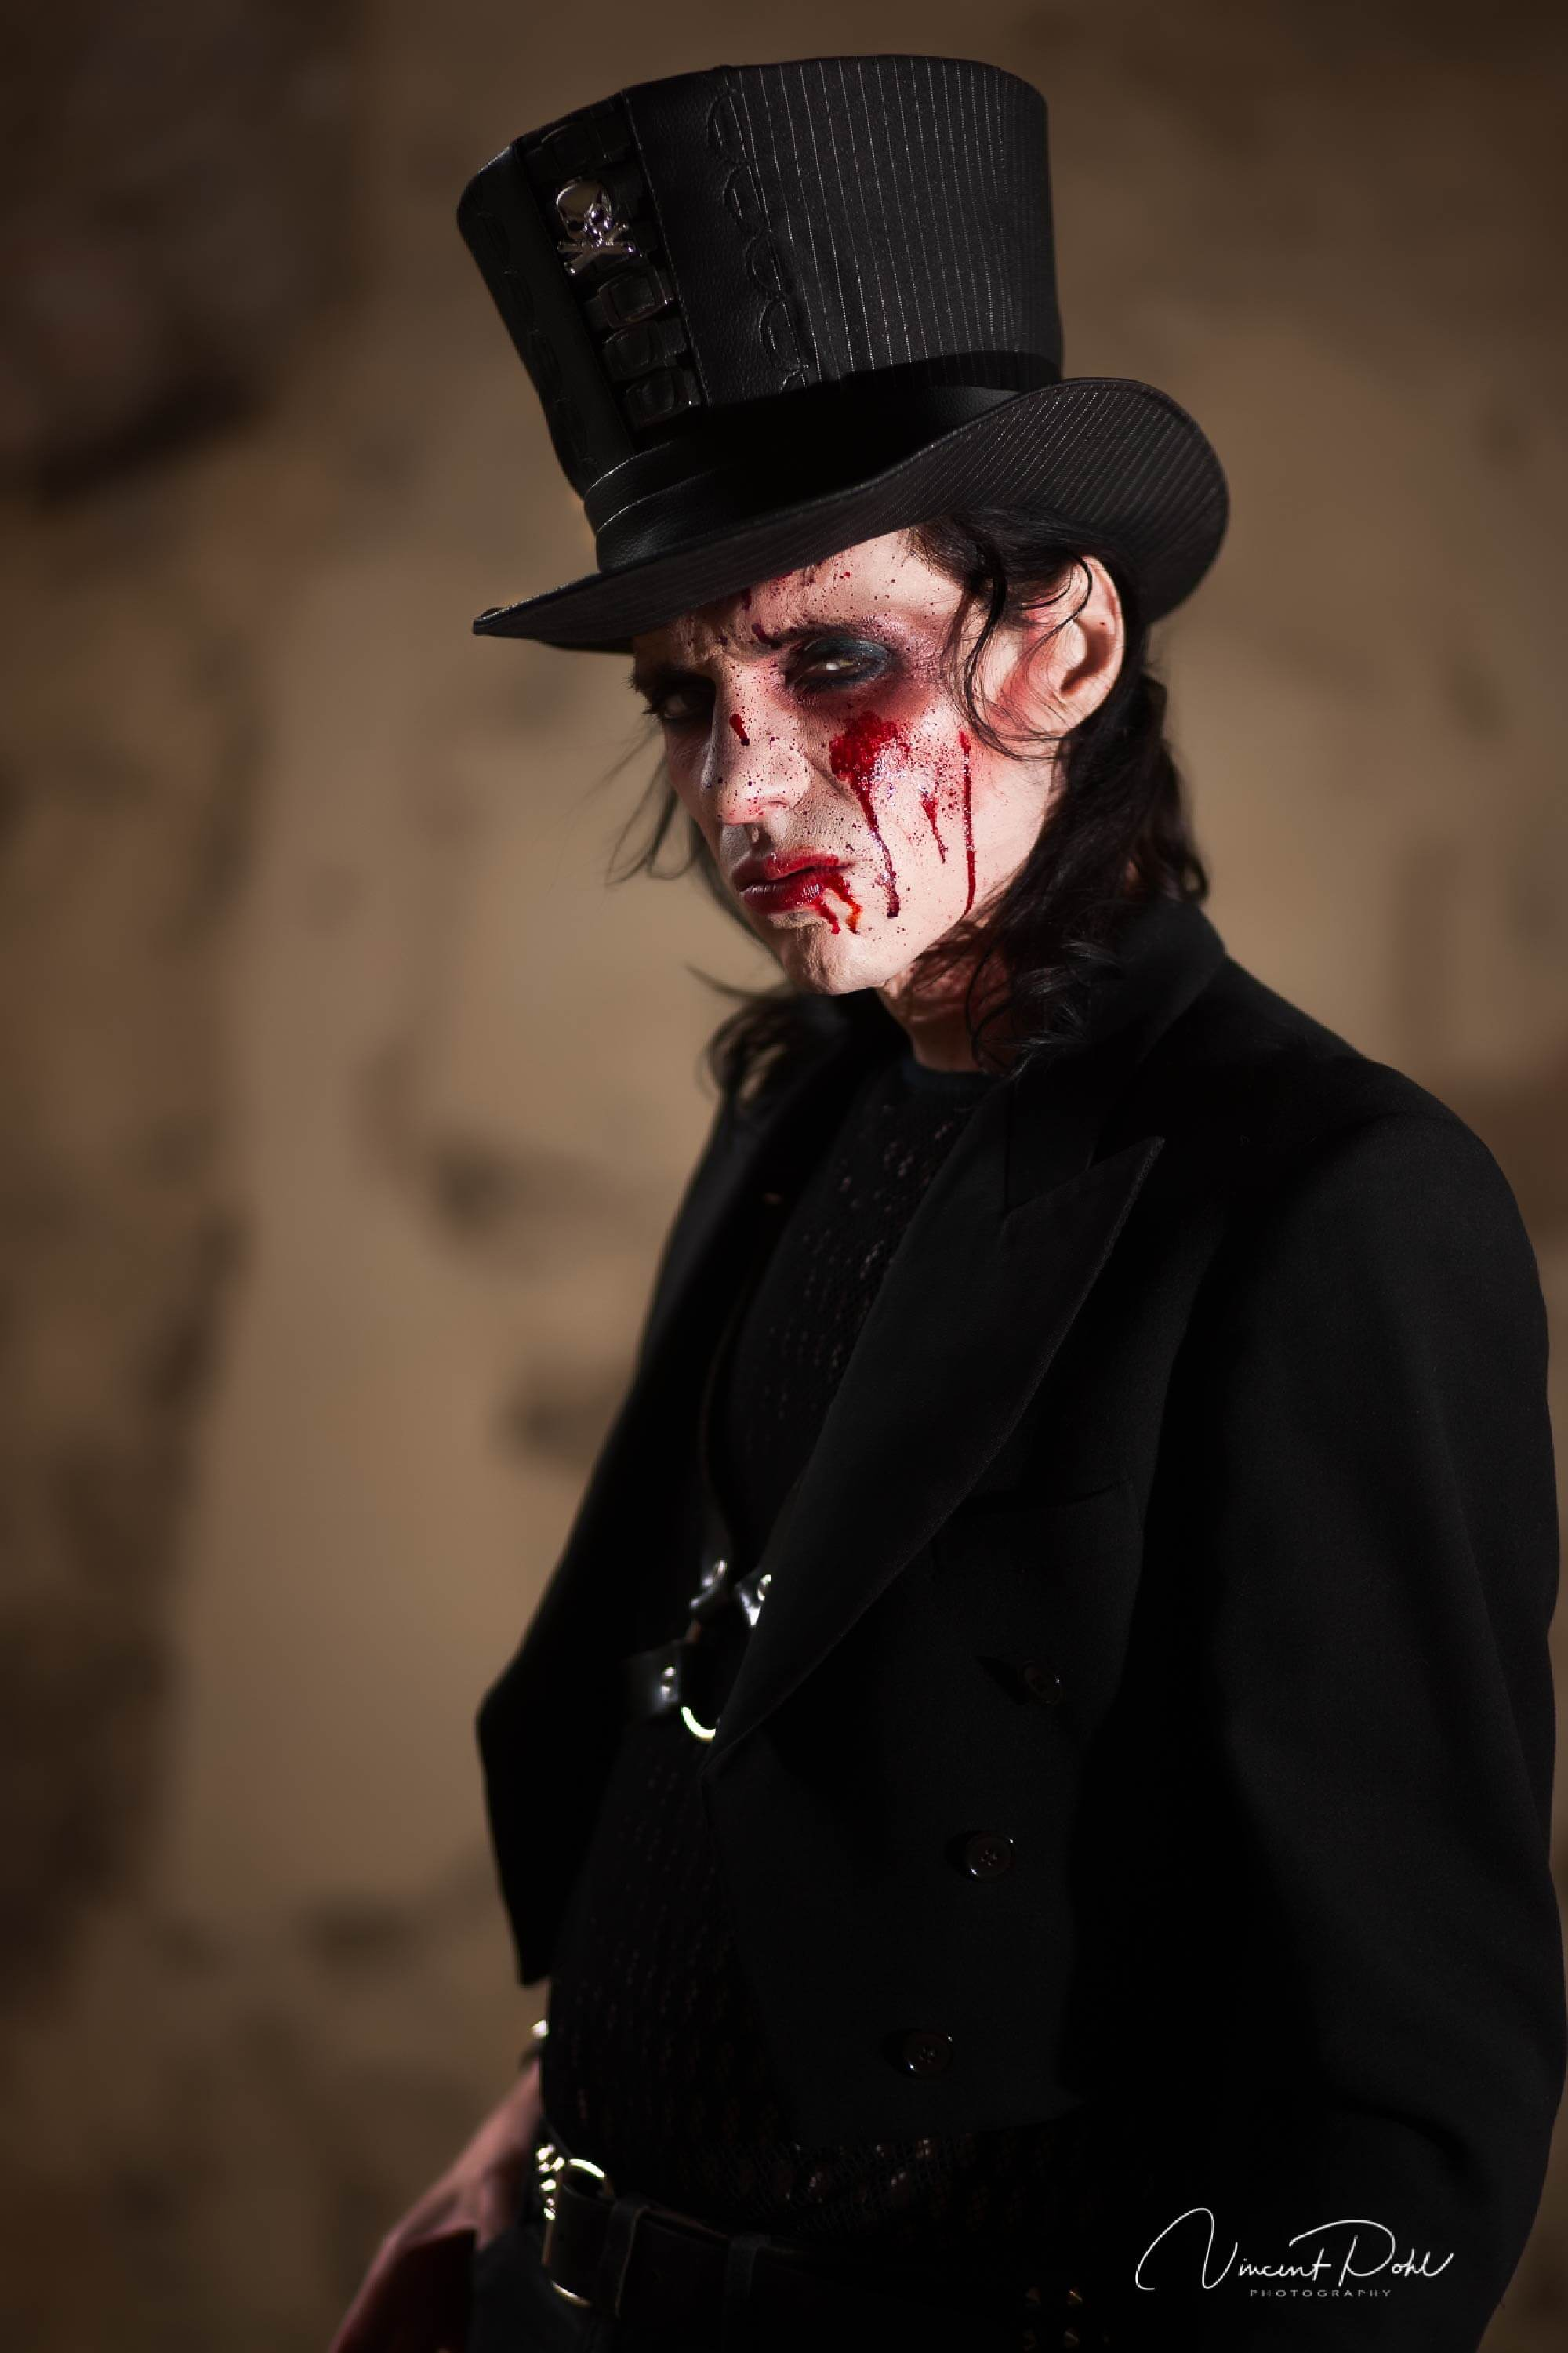 Fantasy makeup. A man with blood on his face and a top hat poses for a photo.